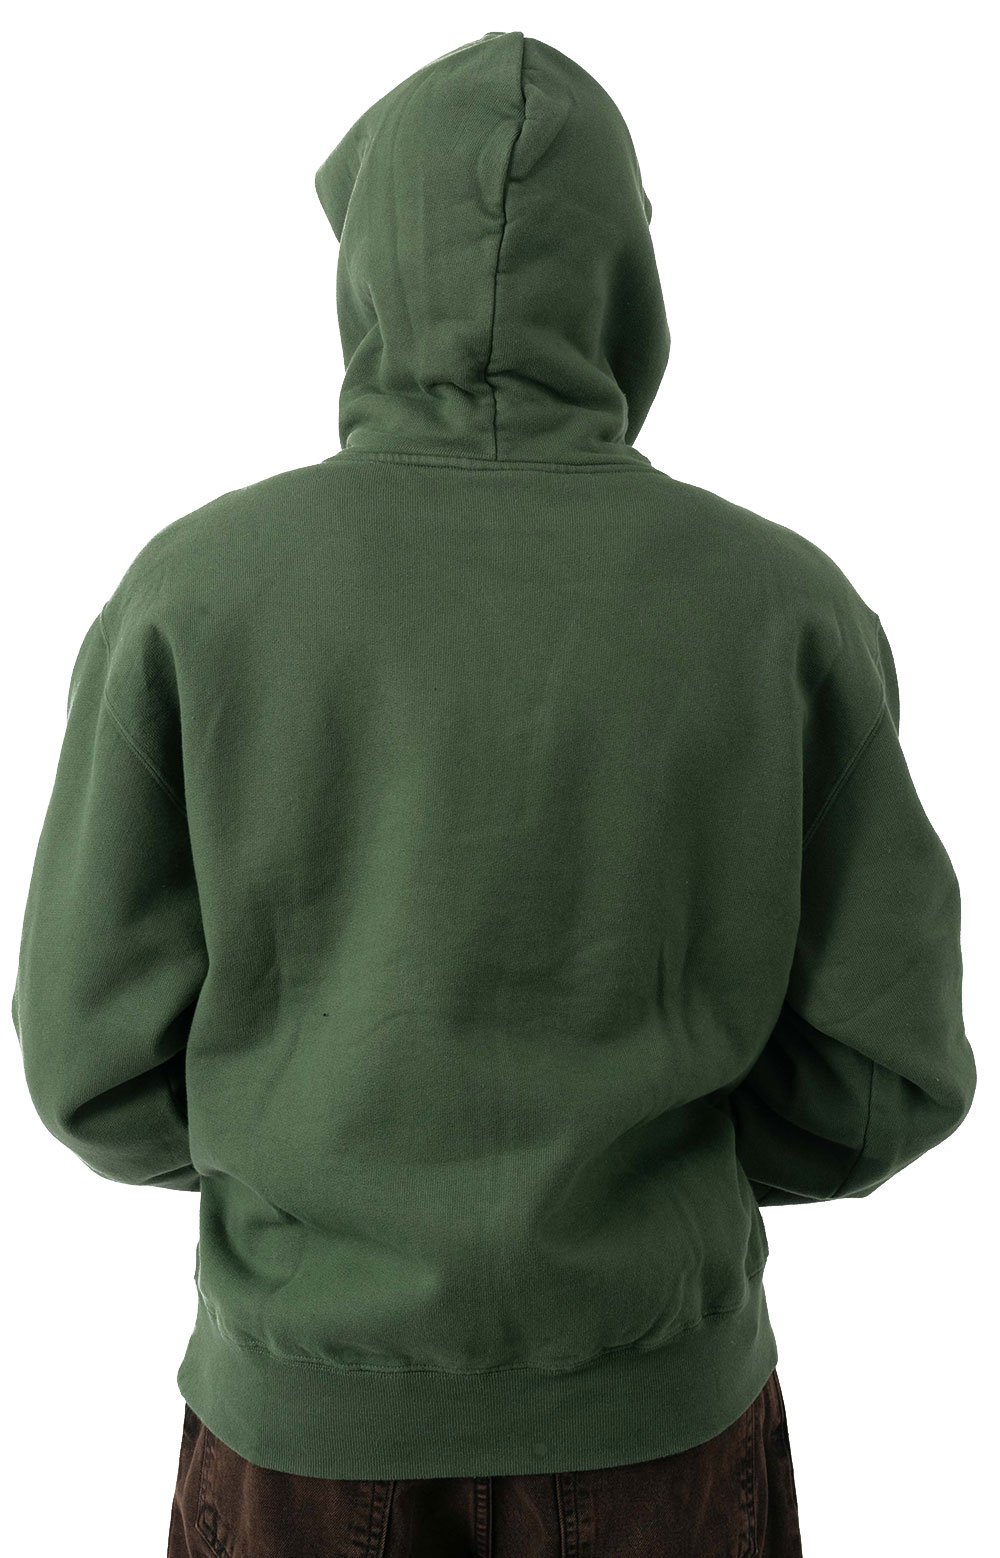 Patch Pullover Hoodie - Hunter Green  3